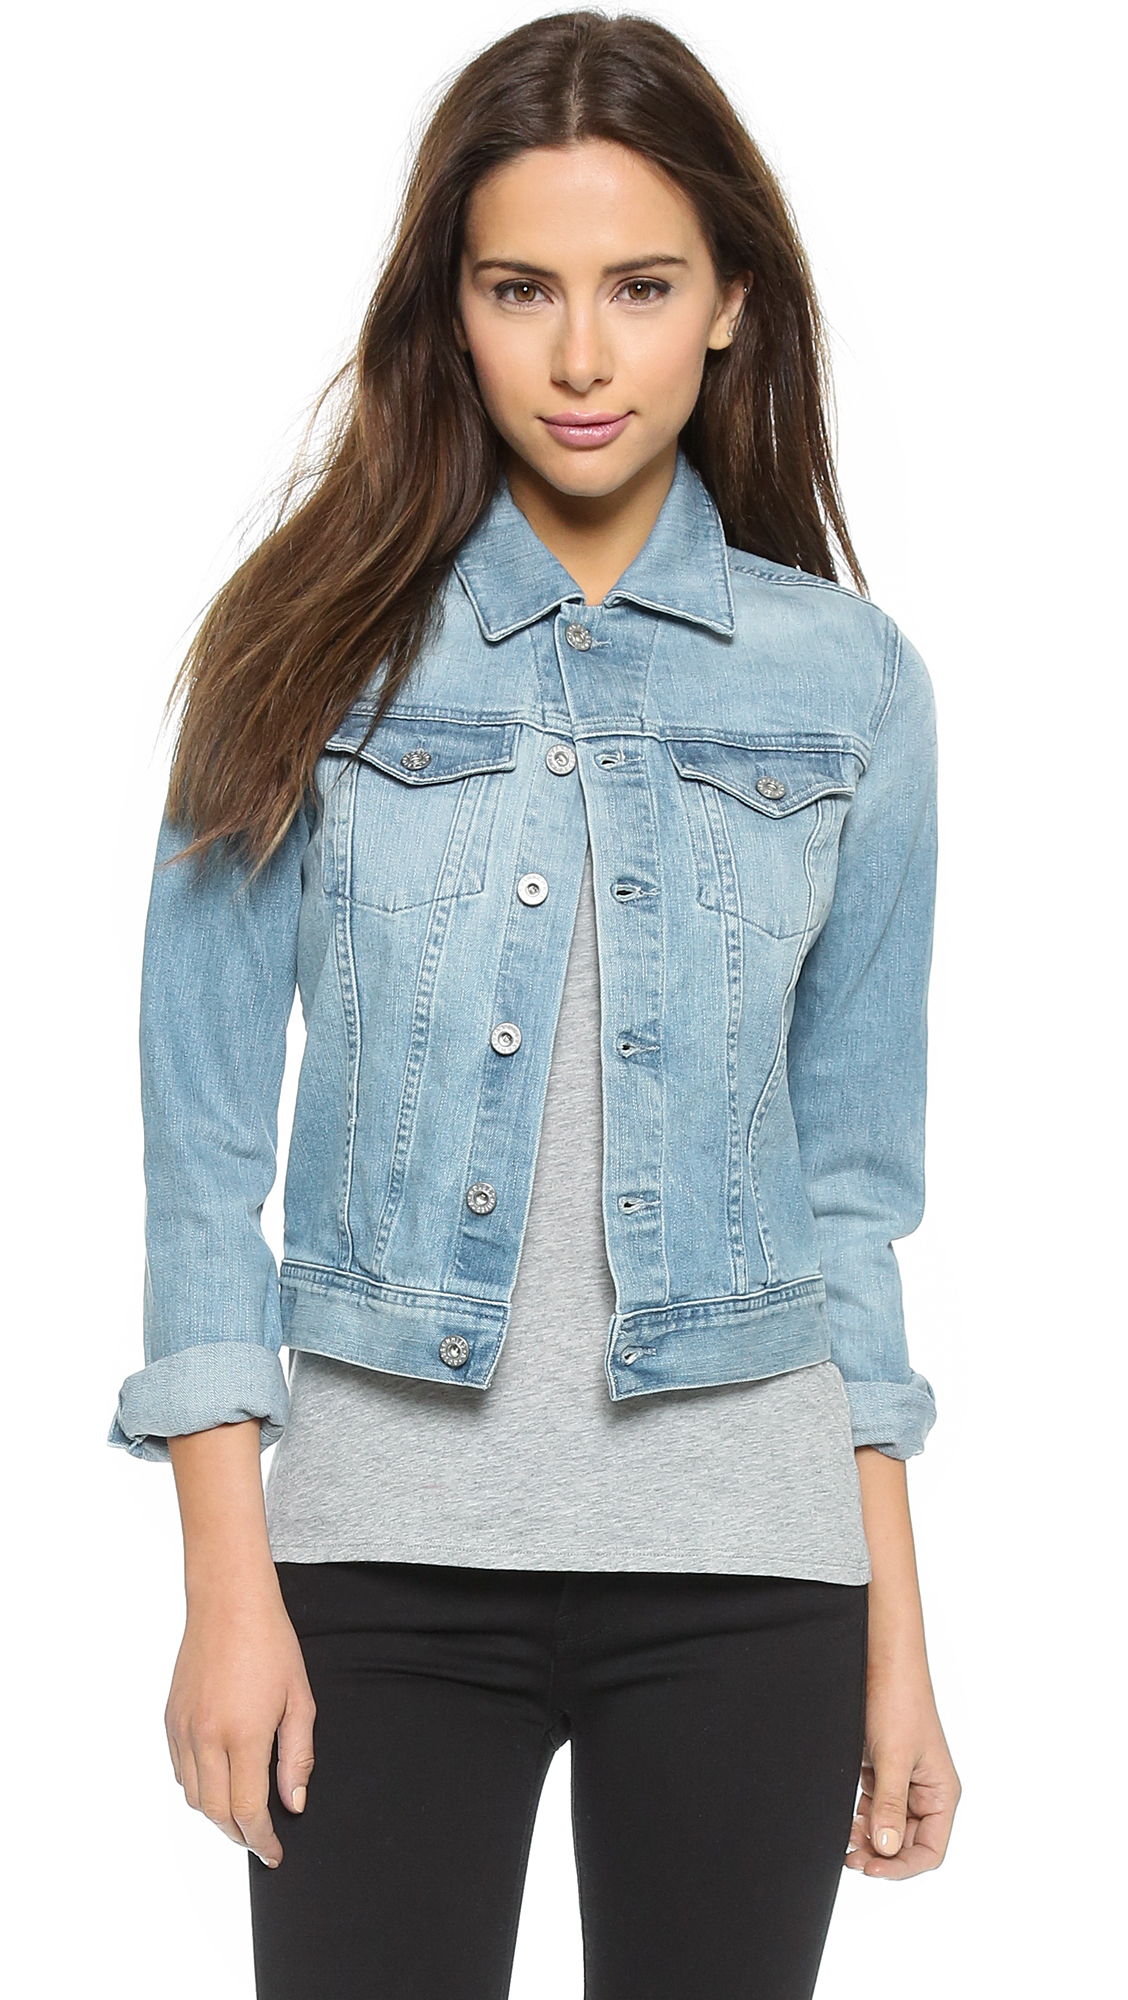 Ag Robyn Jacket - Sea Glass at Shopbop